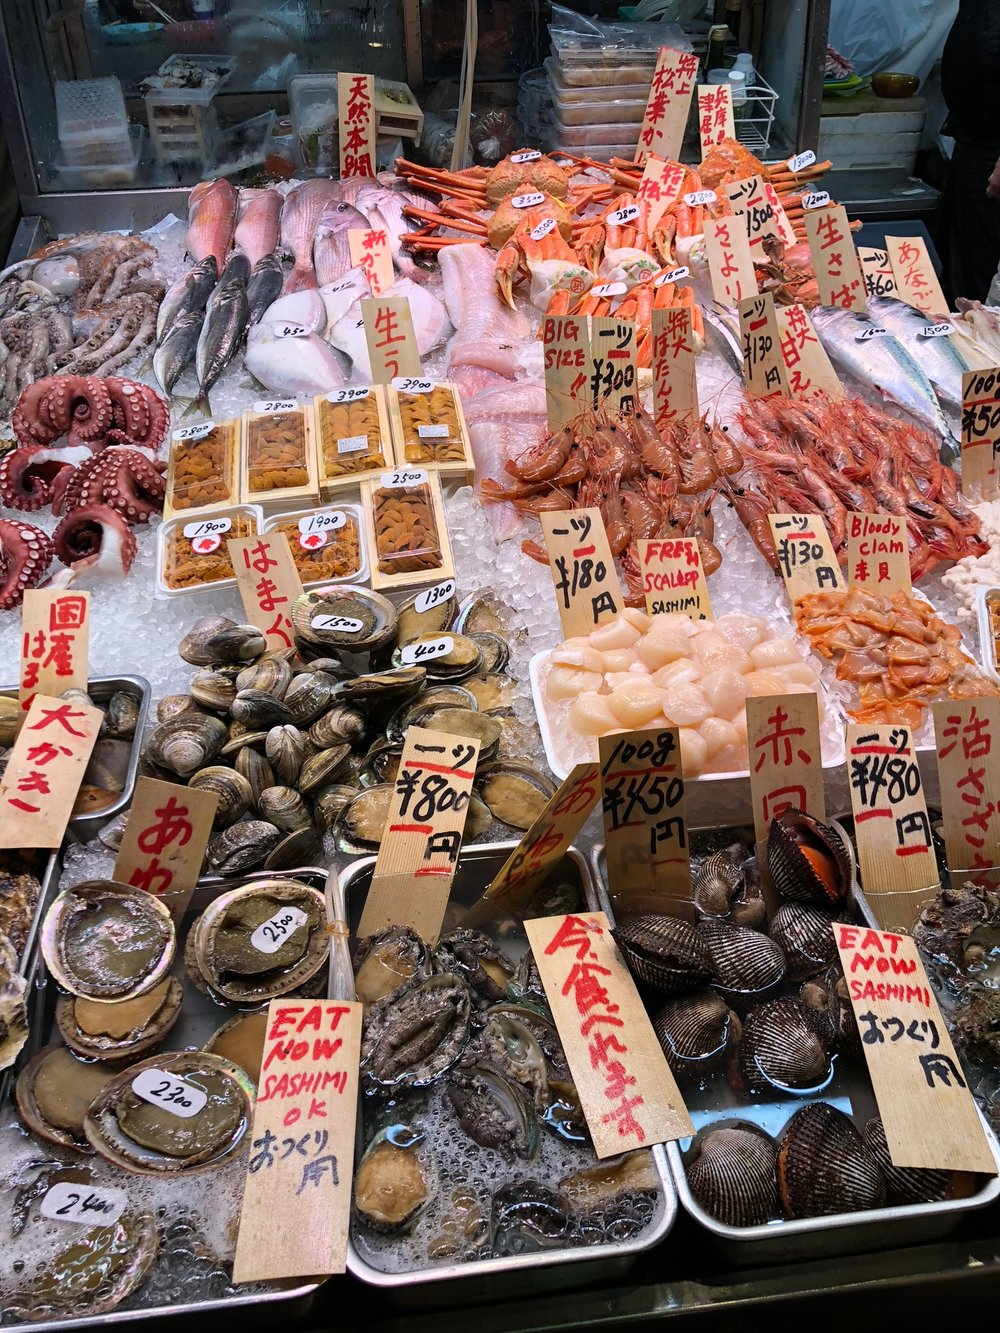 Seafood galore. Some stalls were serving up fresh & raw seafood to be eaten on the spot -- they'd open up oysters for you to knock back, discard the shells, and continue your market stroll.